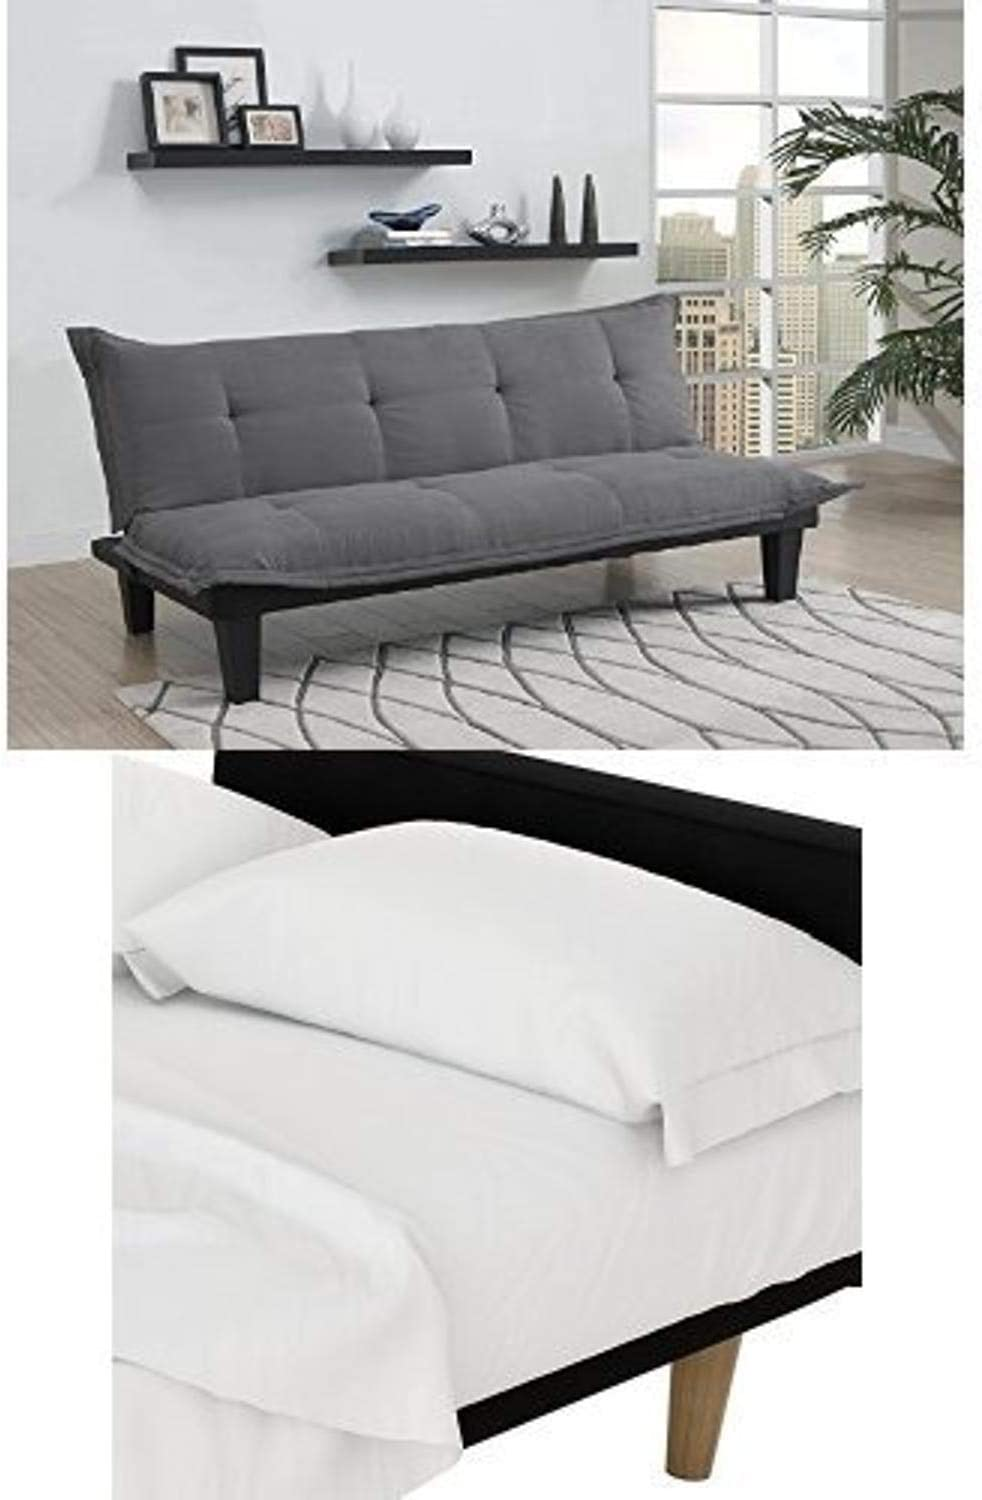 DHP Lodge Convertible Futon Couch Bed, Gray, and Futon Sheet Set, White